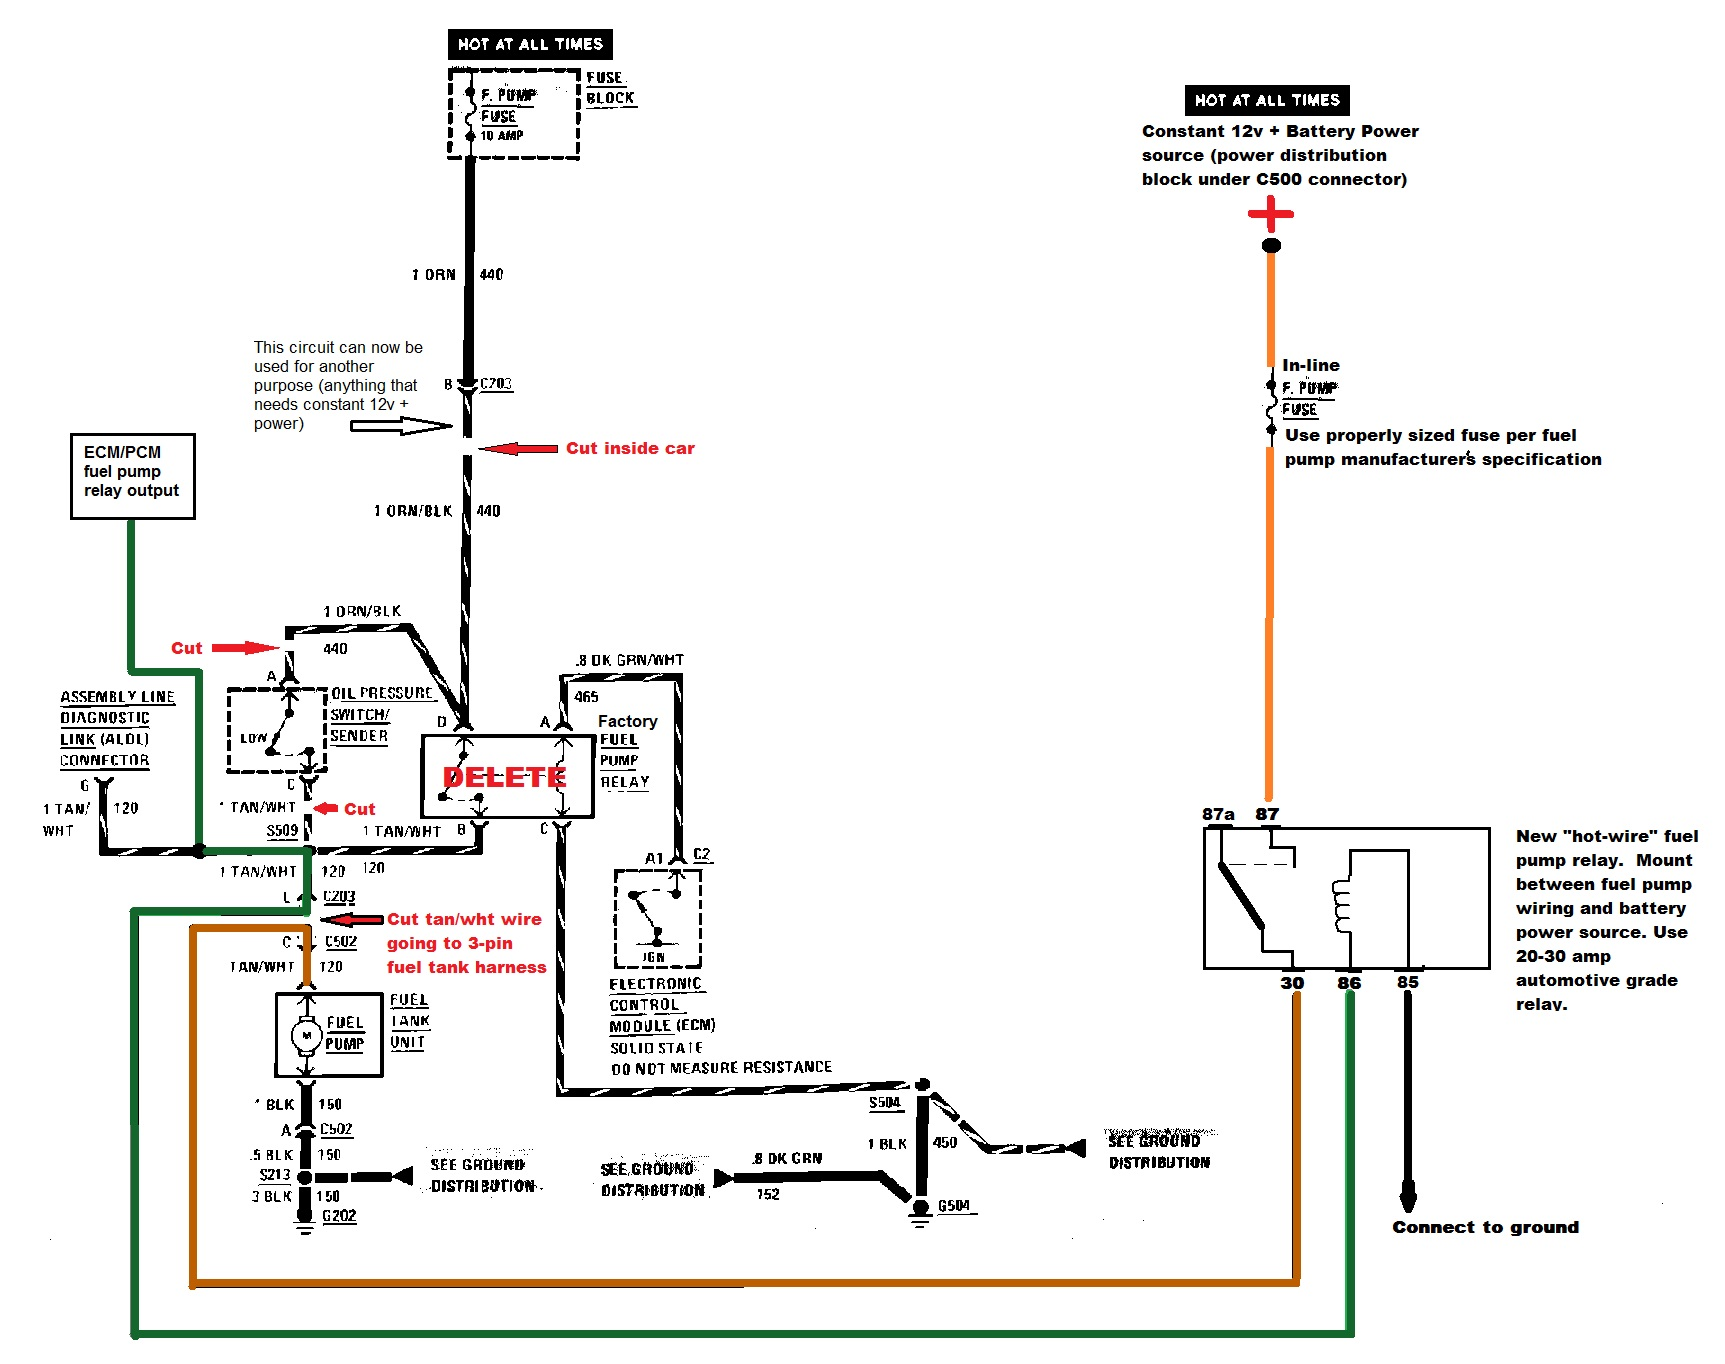 1989 Mazda 323 Factory Wiring Diagram On Fuel Pump Sendin